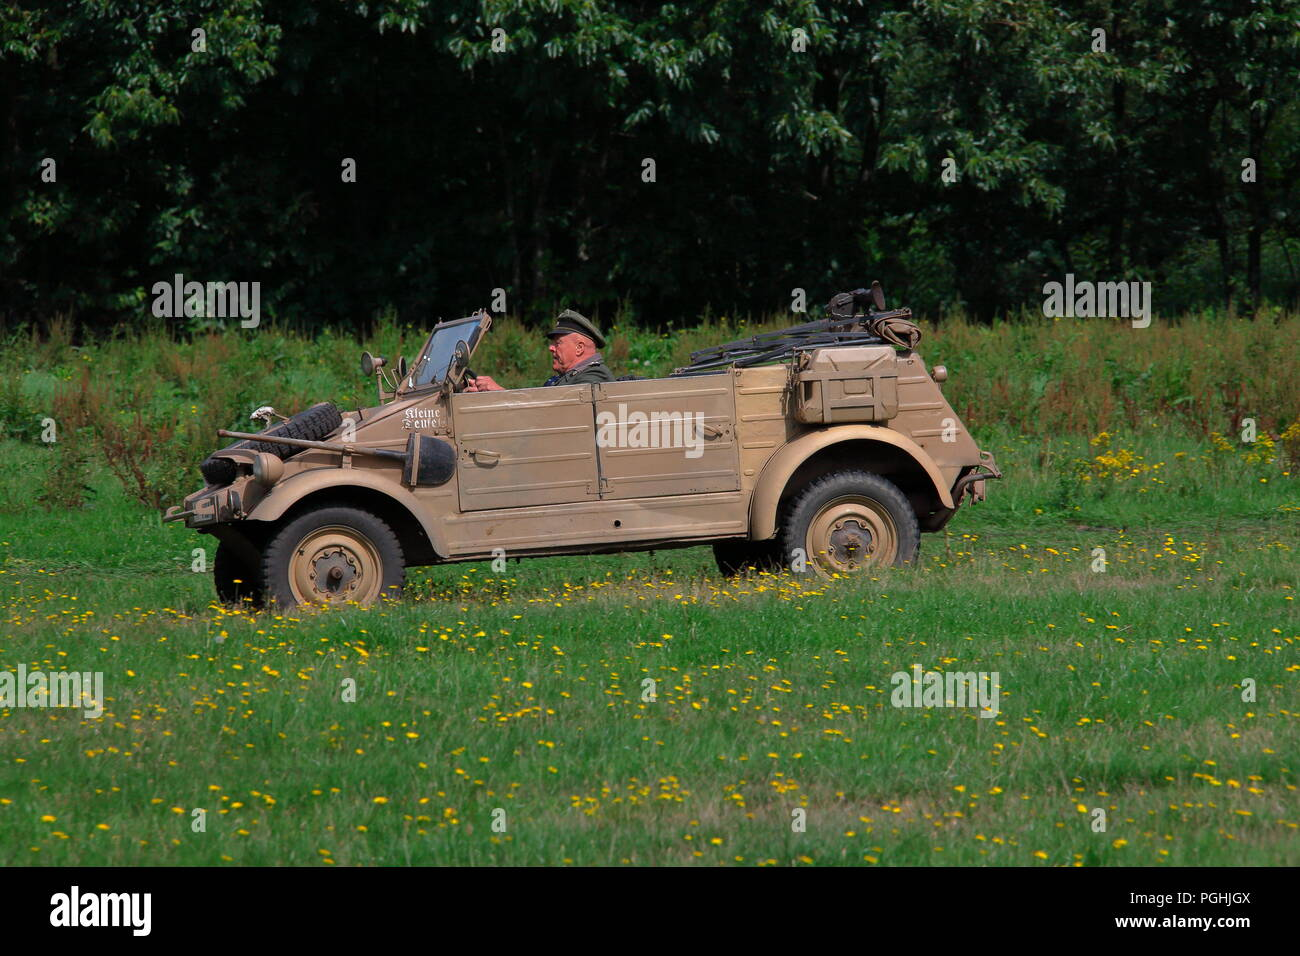 A lone senior military man enters the arena to conduct the battle from his vehicle during Detling militaria show 2018. - Stock Image